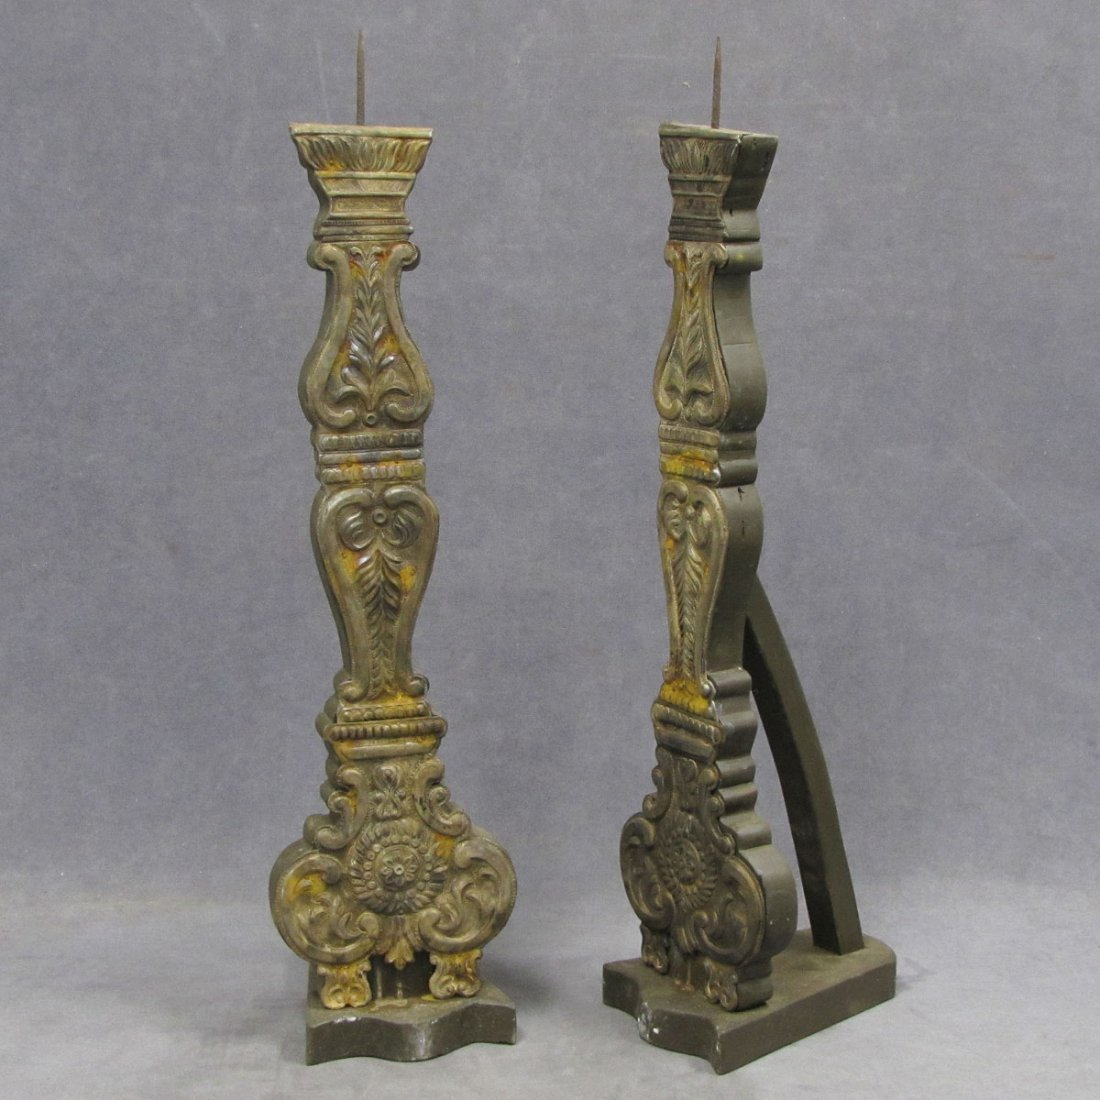 PAIR SILVER MOUNTED WOOD PRICKET CANDLEHOLDERS